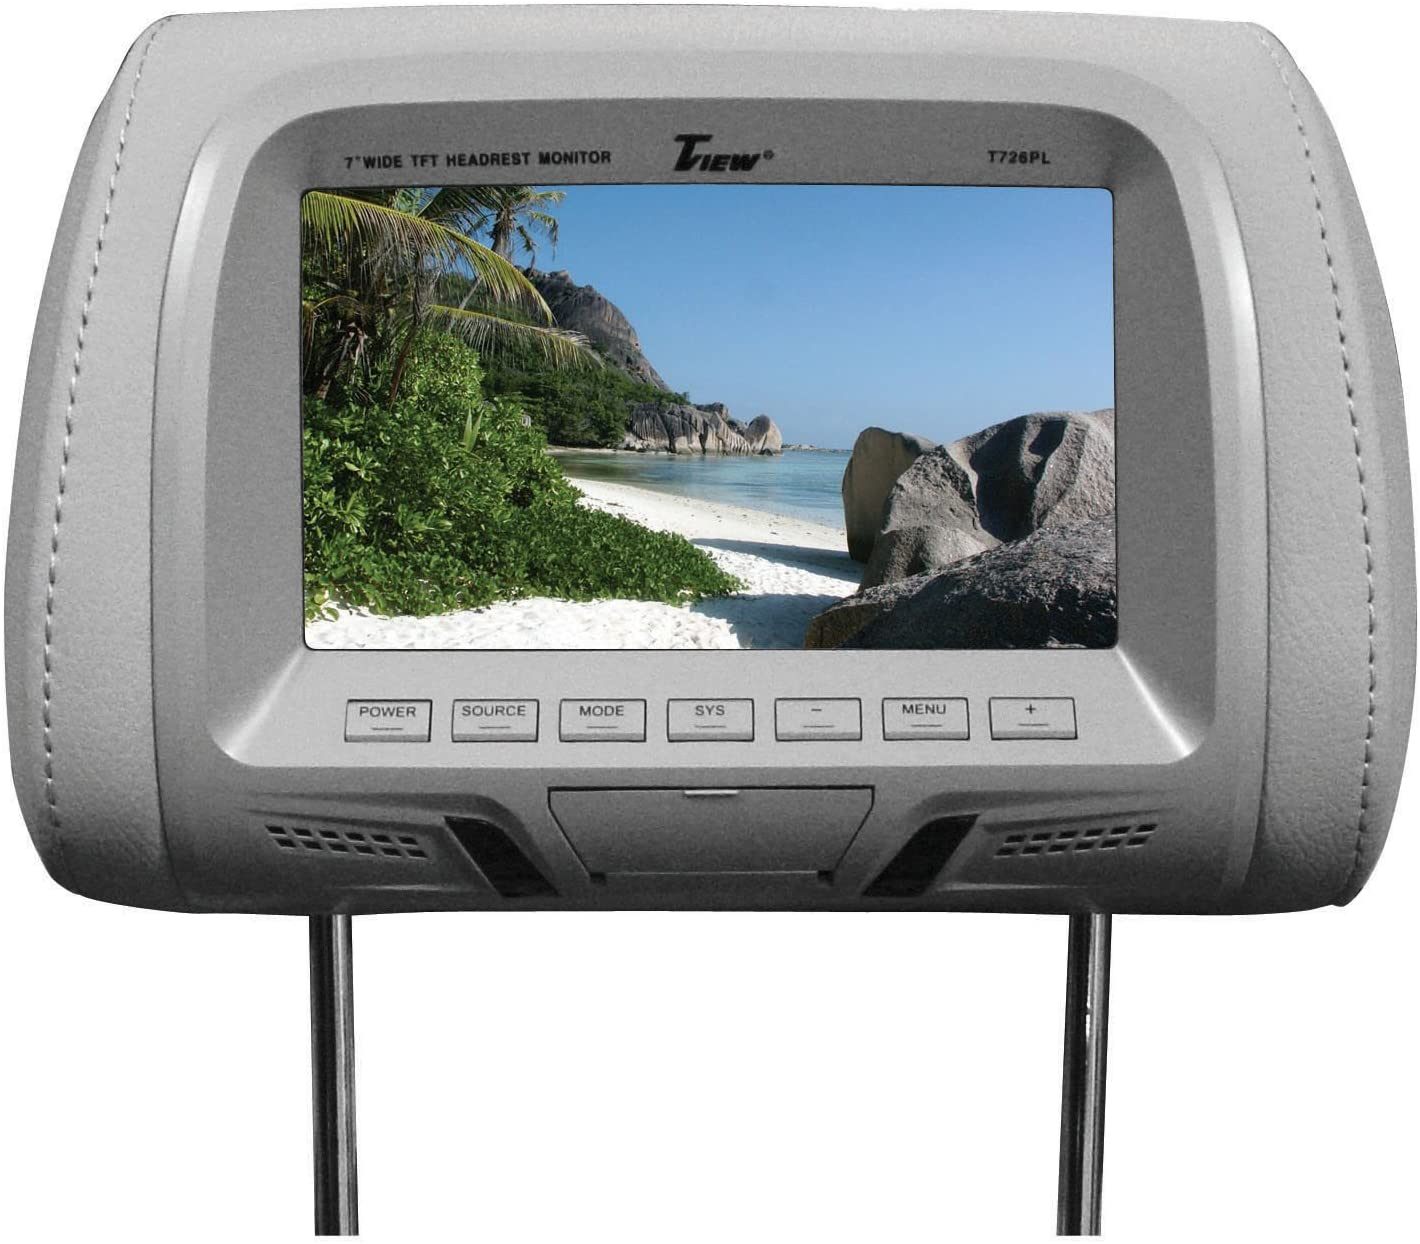 Tview T726plgr 7 Dual Gray Widescreen Headrest Car Monitors T726pl-gr UEi FBA/_t726plgr